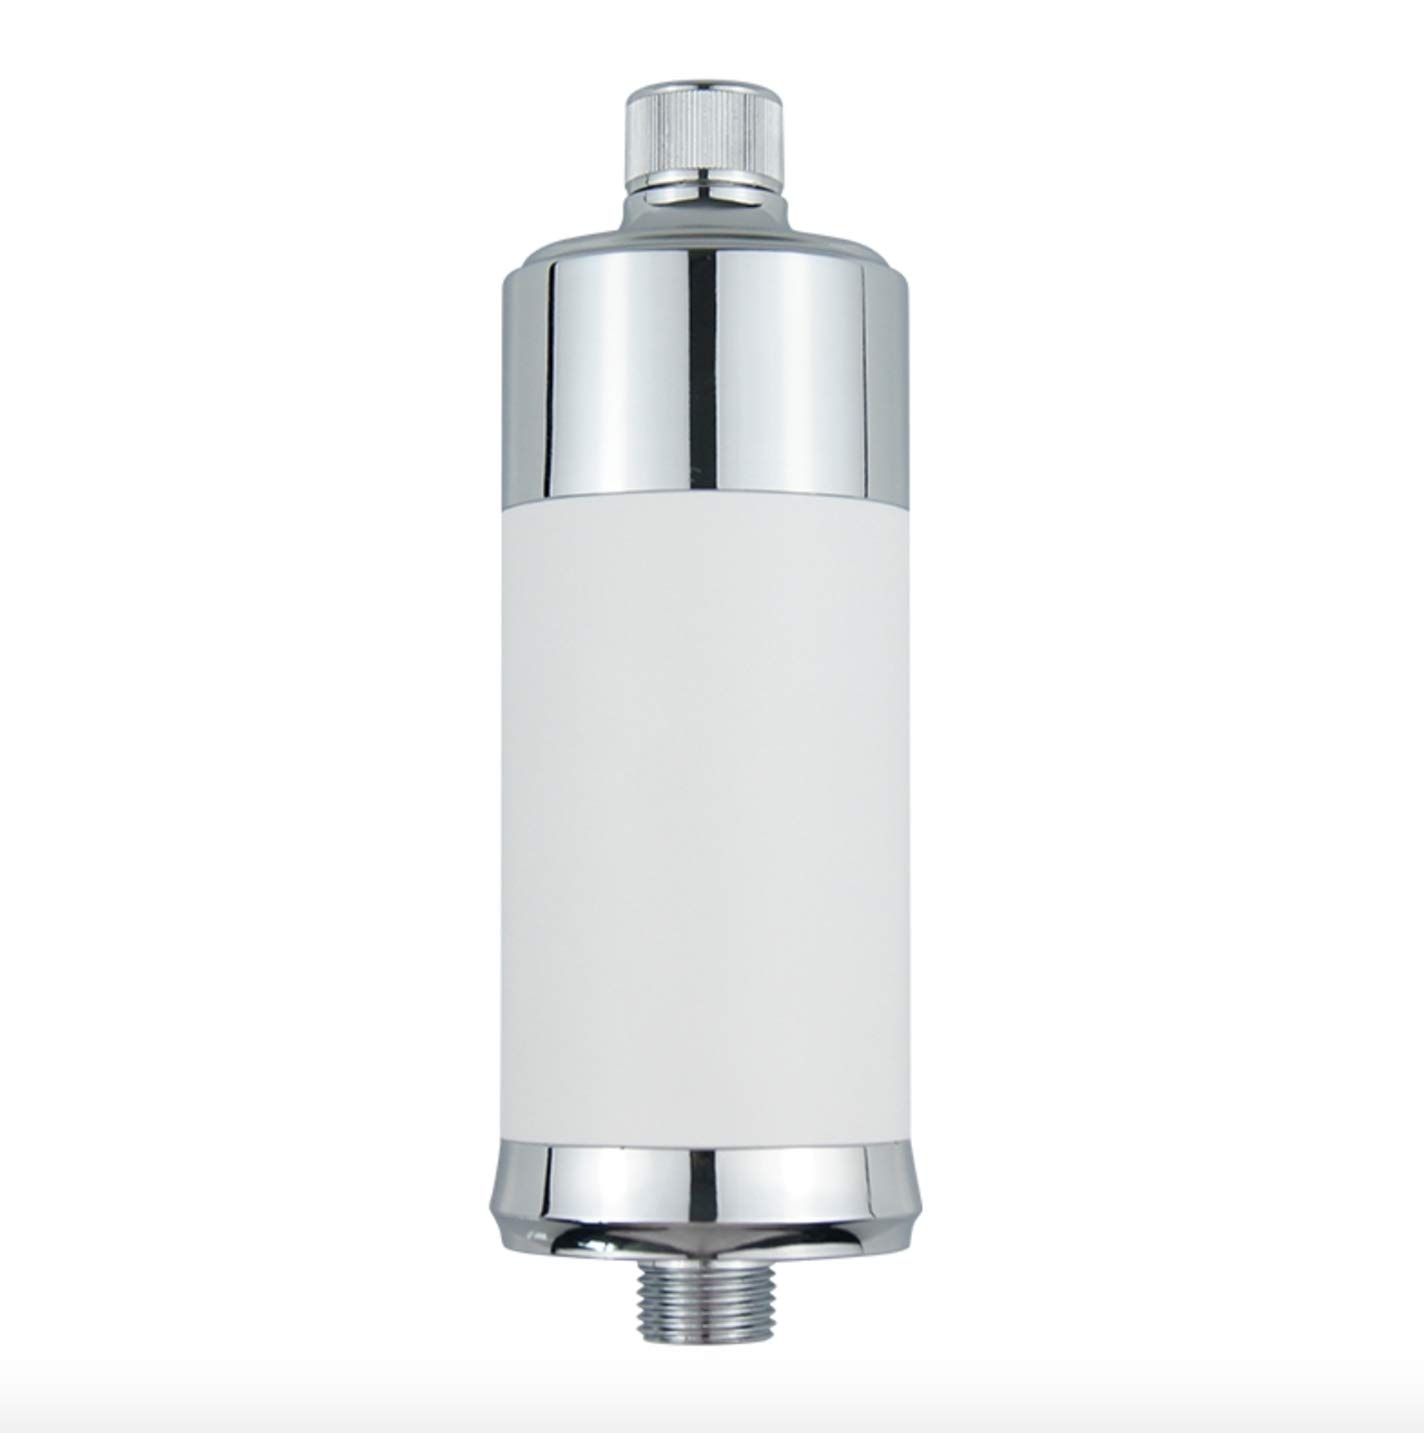 Yuyao Kangpu Water Treatment Equipment Factory Black EveryDay 12-Stage Shower Filter Multi Stage Filtration Replaceable Filters